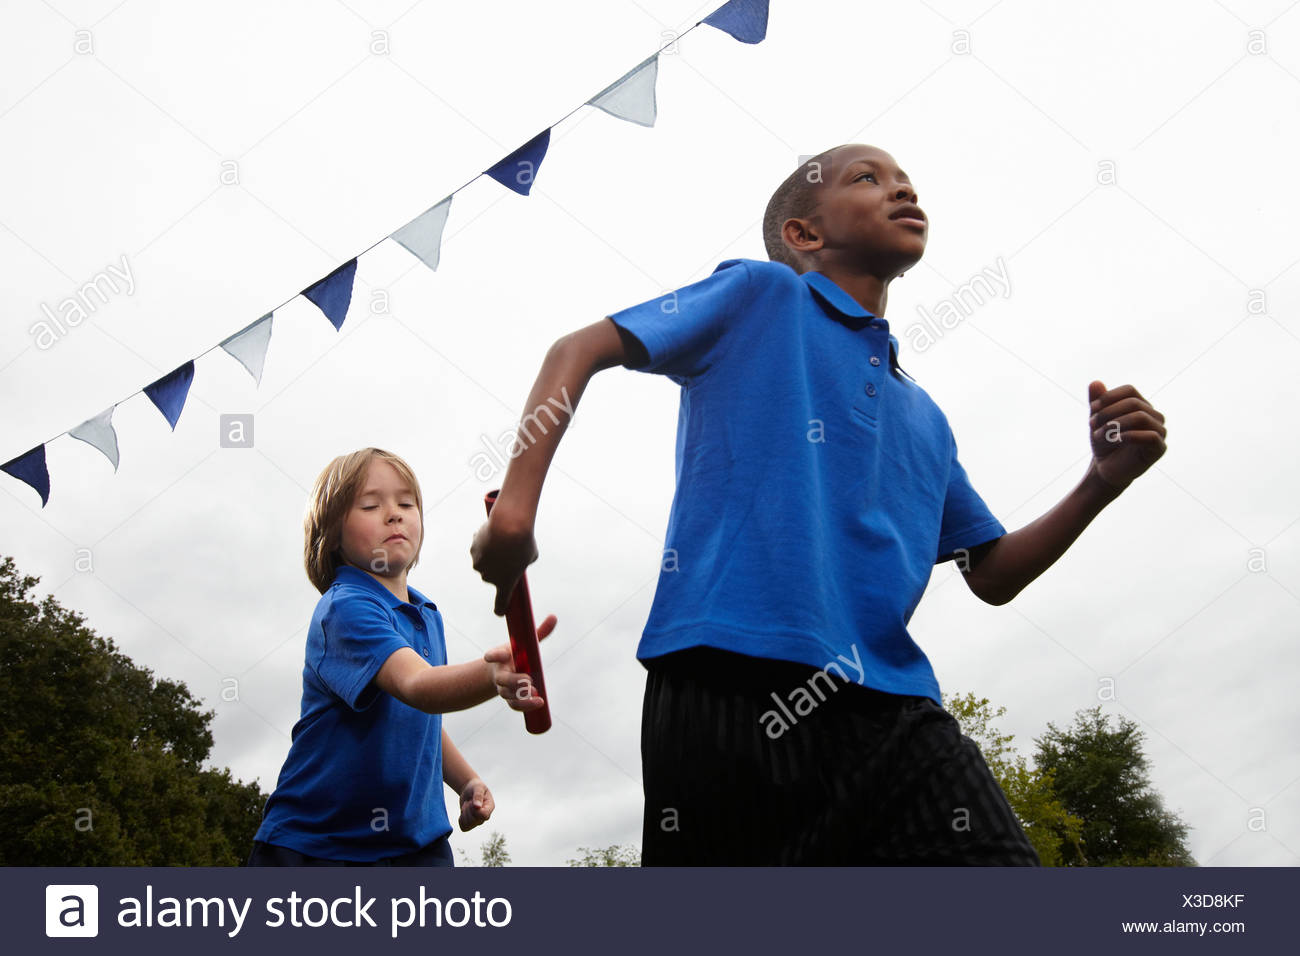 School boy passing baton to teammate - Stock Image